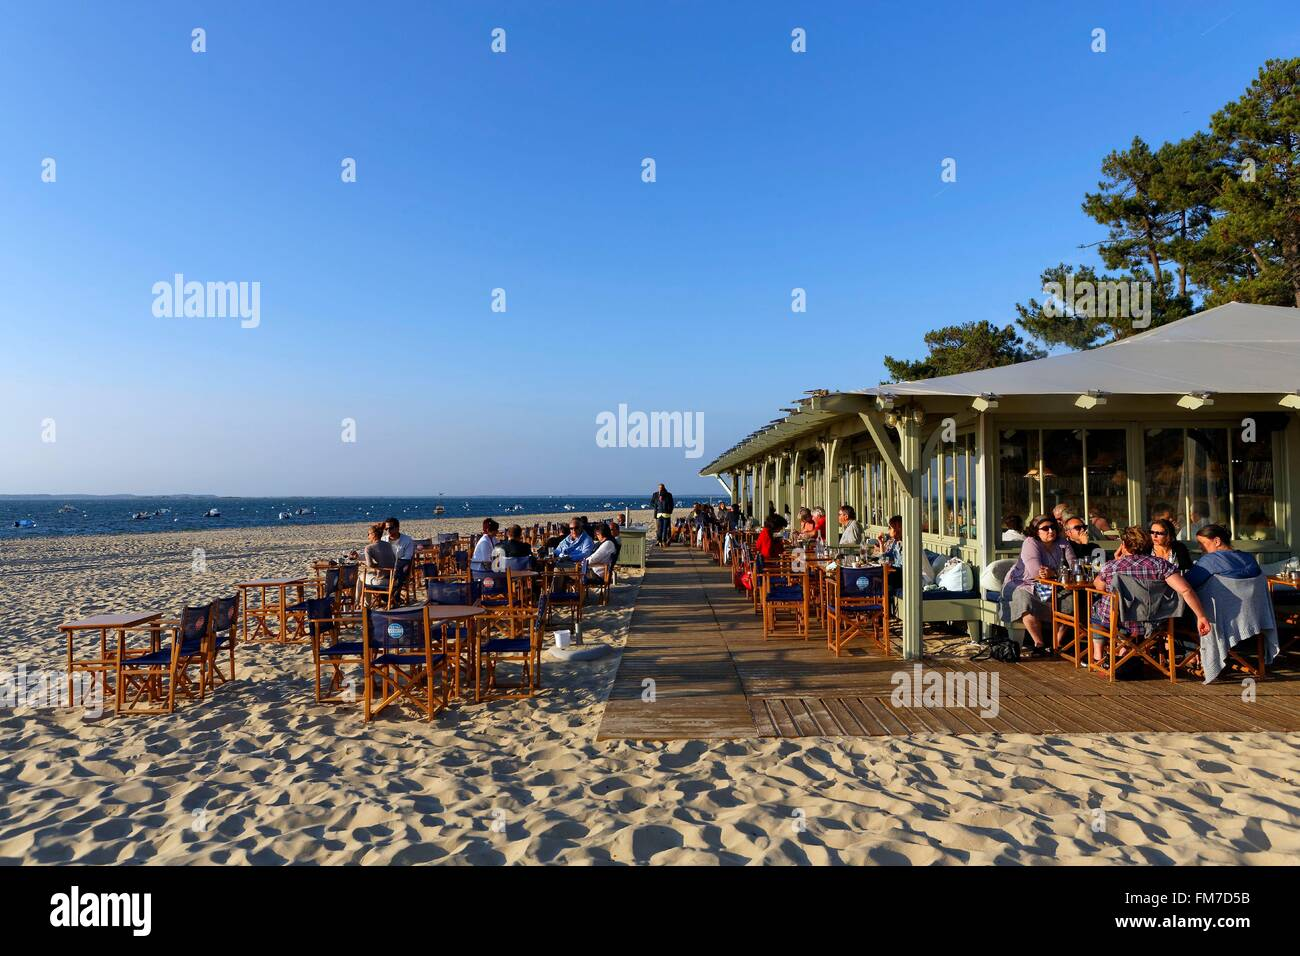 Plage Pereire High Resolution Stock Photography And Images Alamy